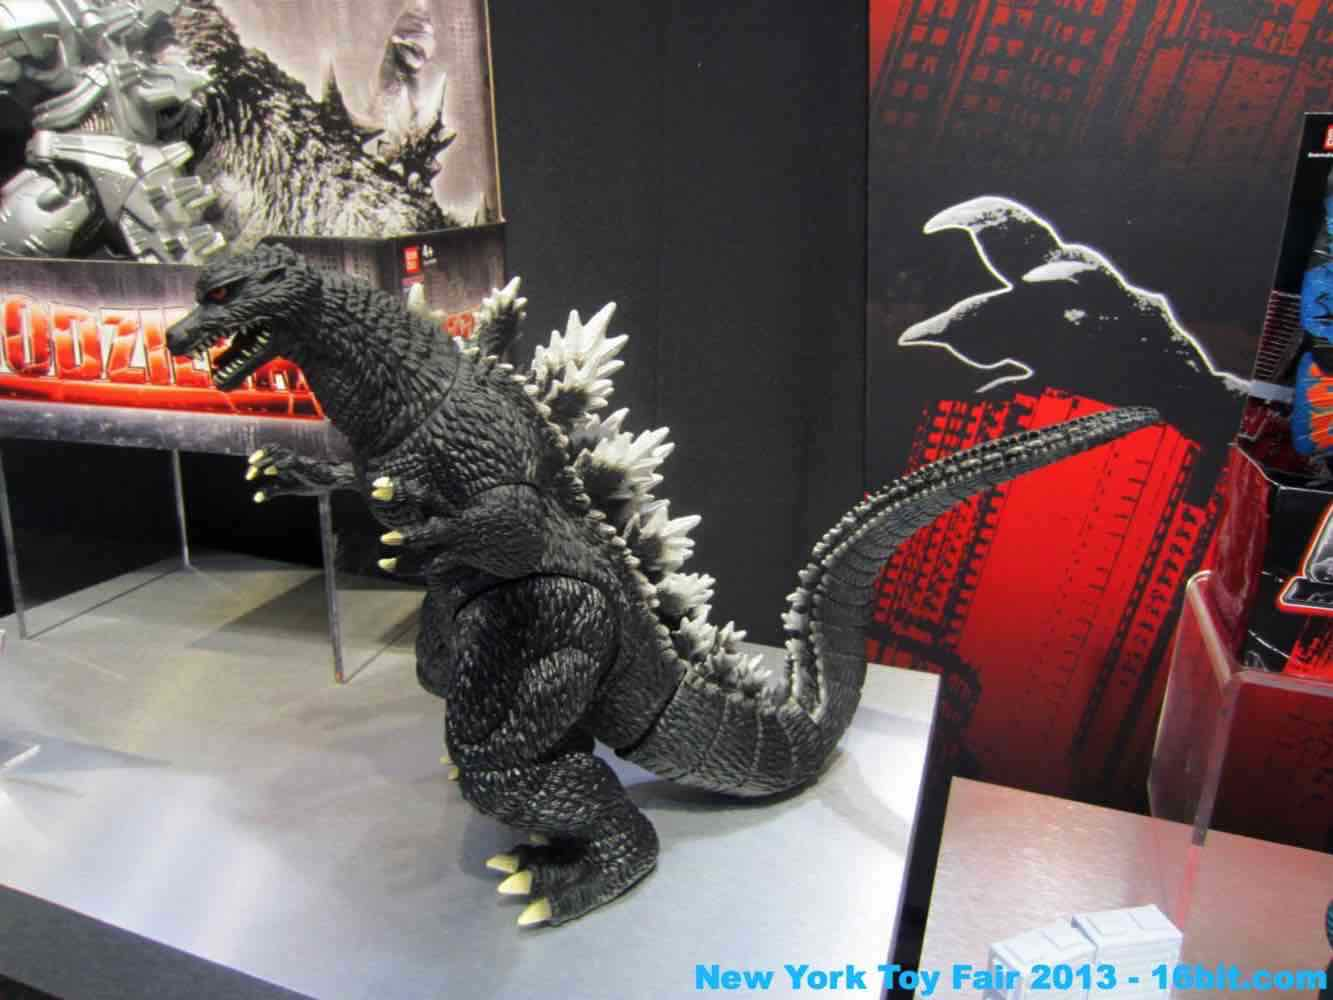 16bit Com Toy Fair Coverage Of Godzilla Action Figures